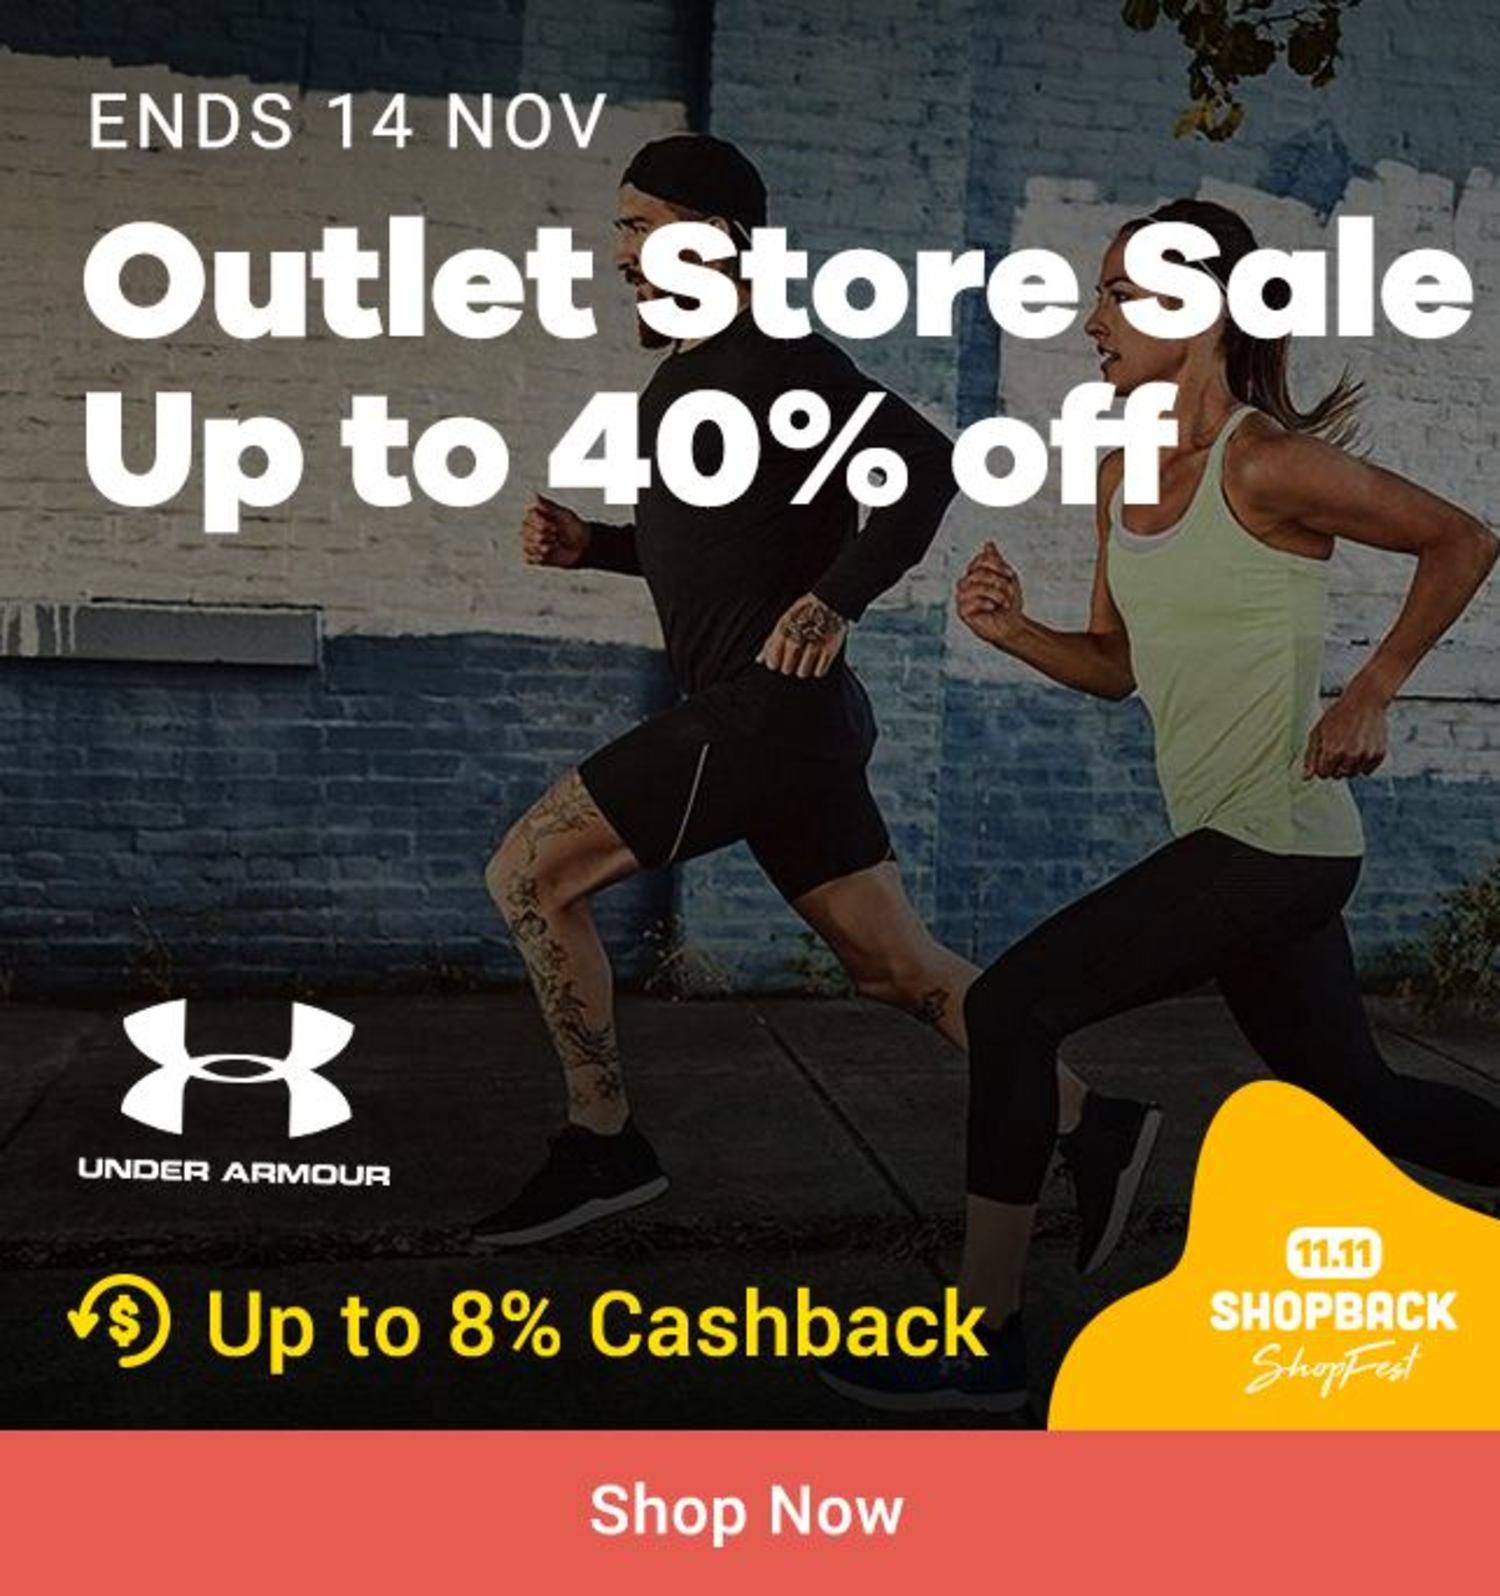 Under Armour: Outlet Store Sale Up to 40% off